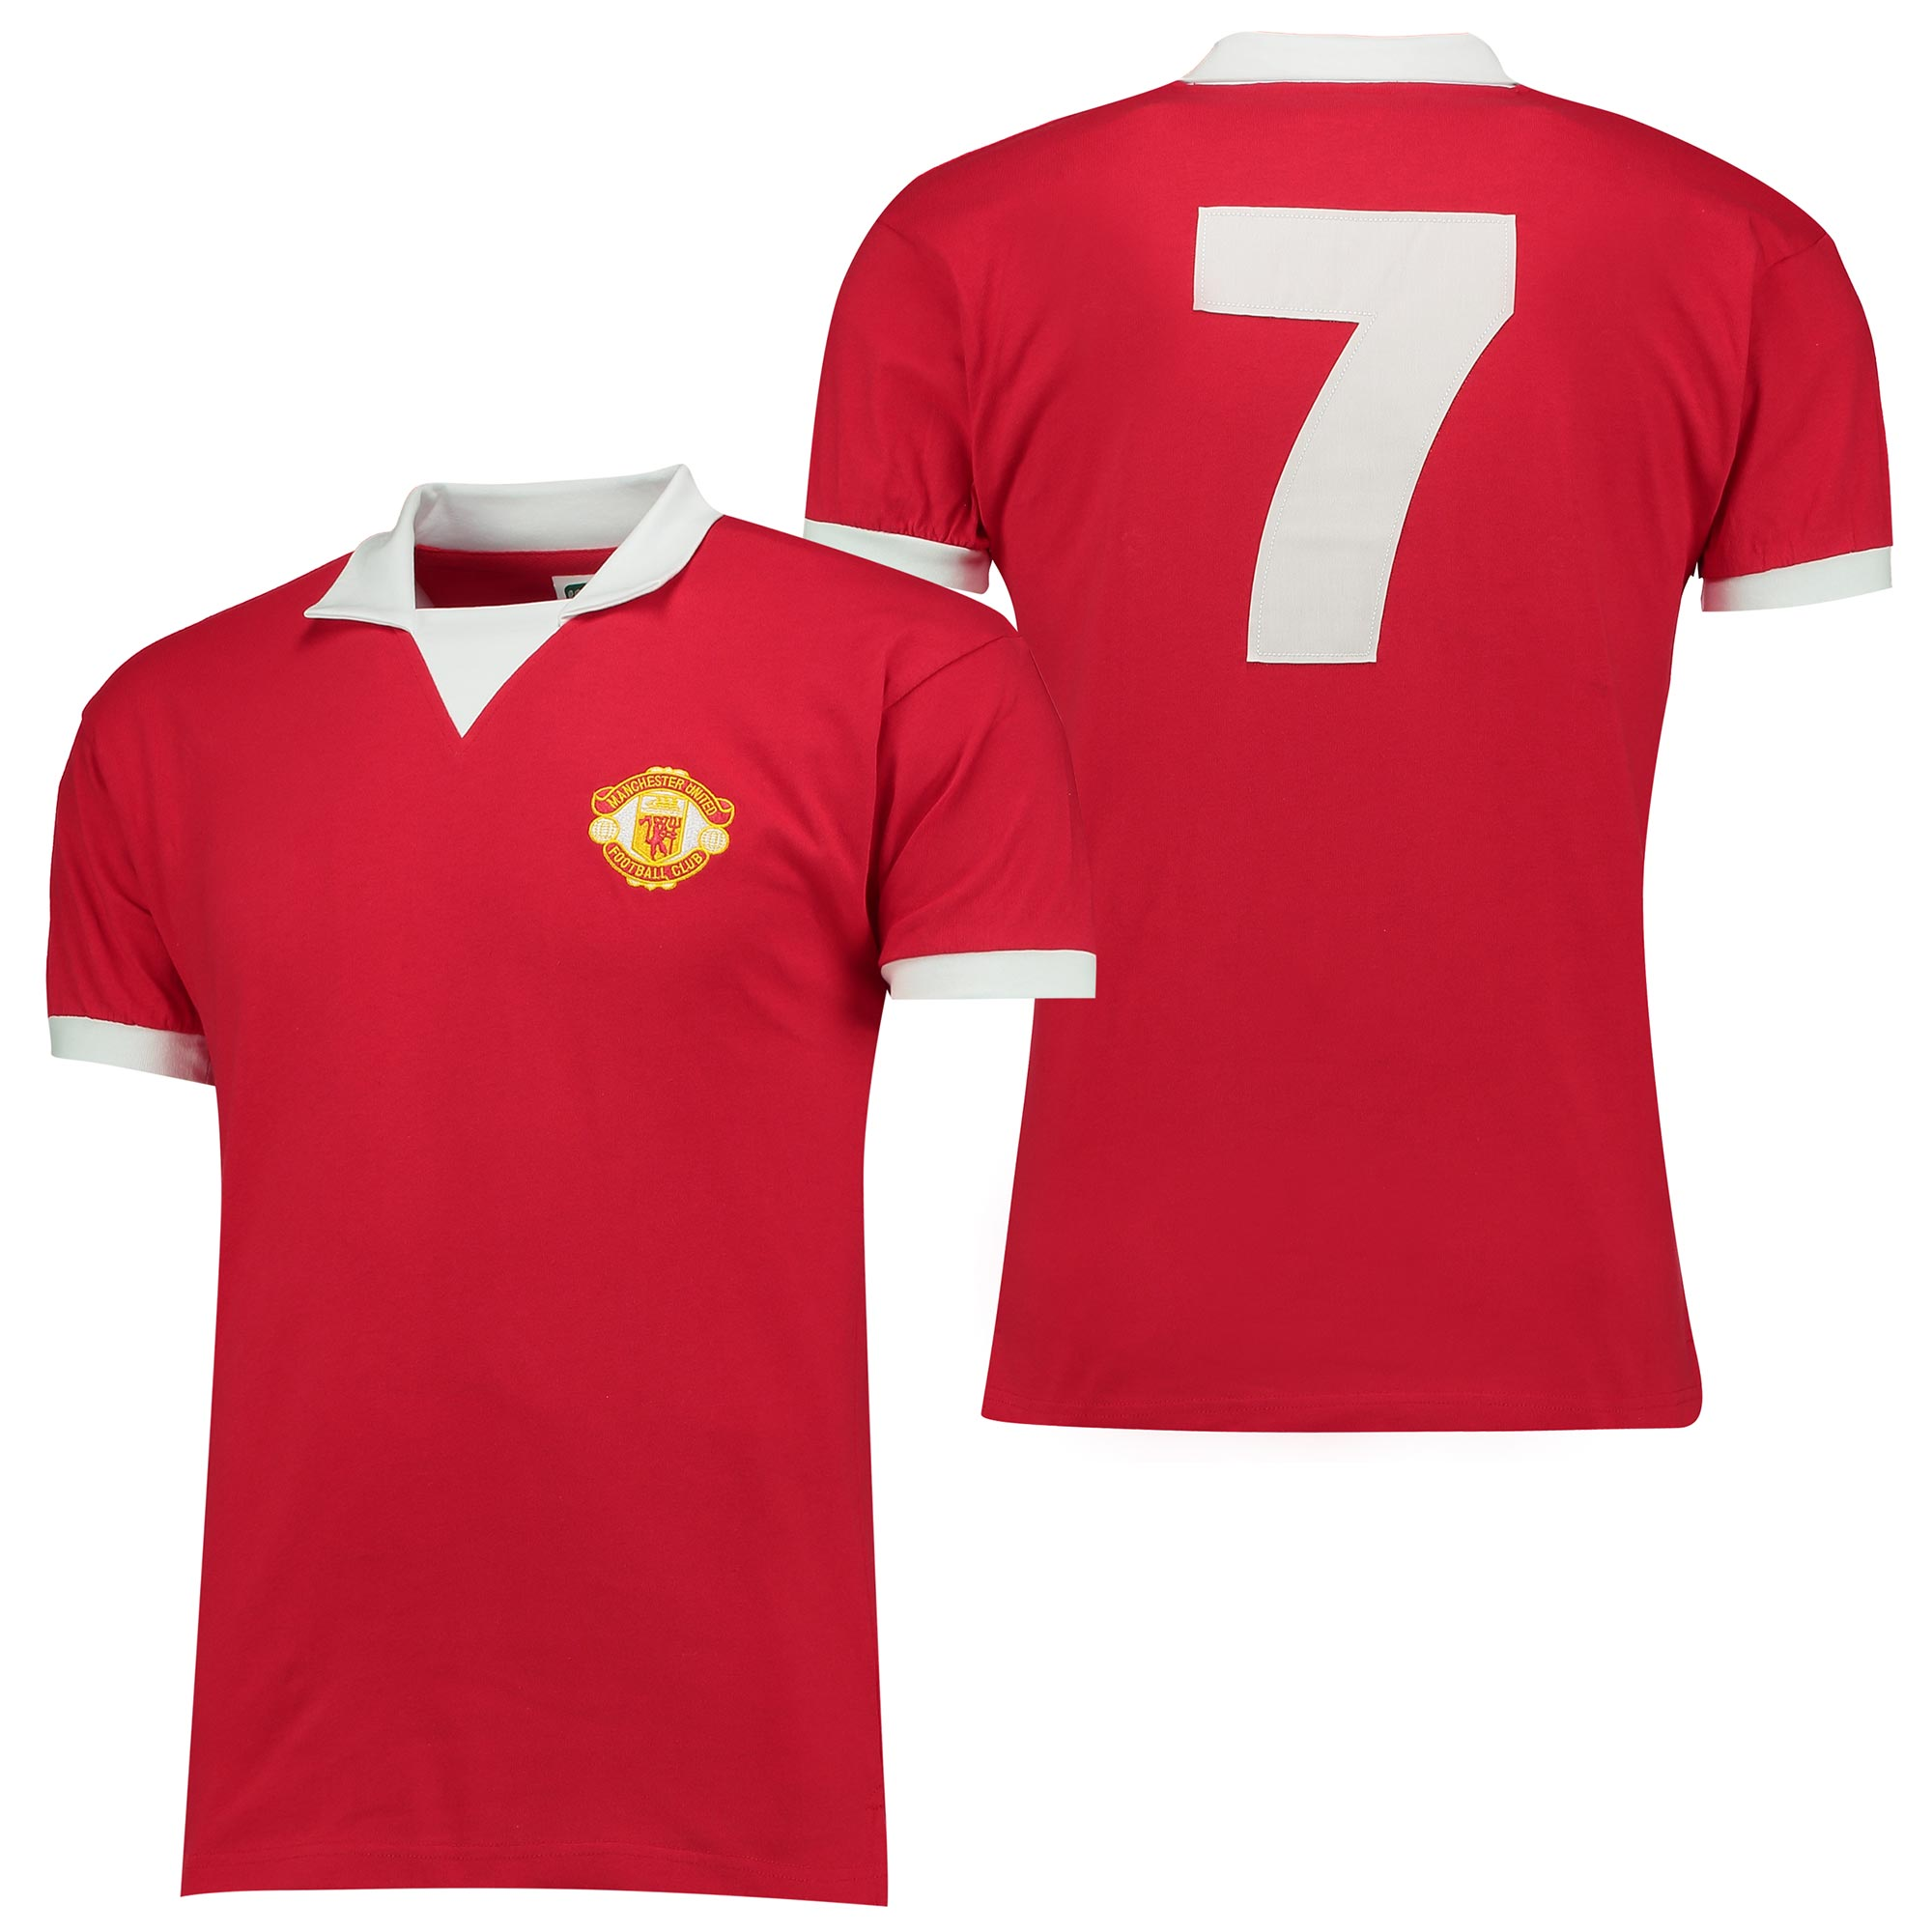 Manchester United 1973 Retro No 7 Home Shirt - Short Sleeved